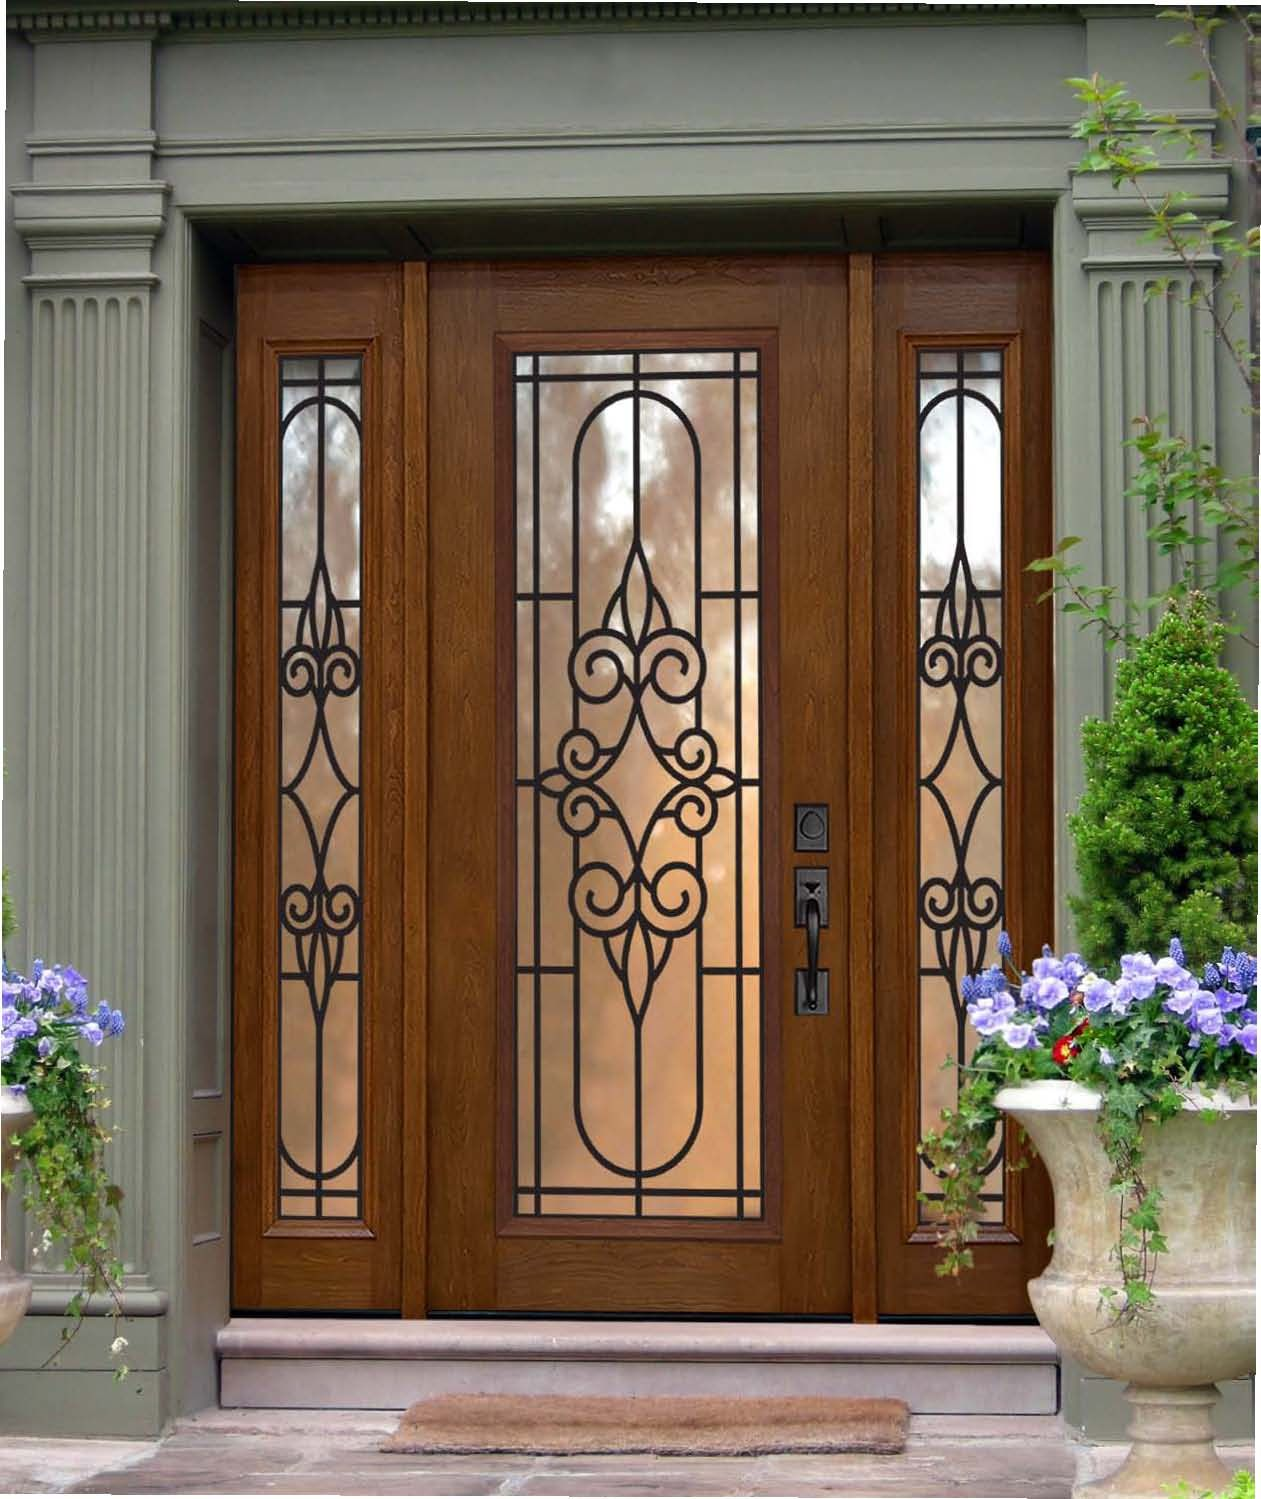 Exterior front doors with sidelights - Entry Doors Sidelights This Is What I Would Love To Replace My Current Generic Set With